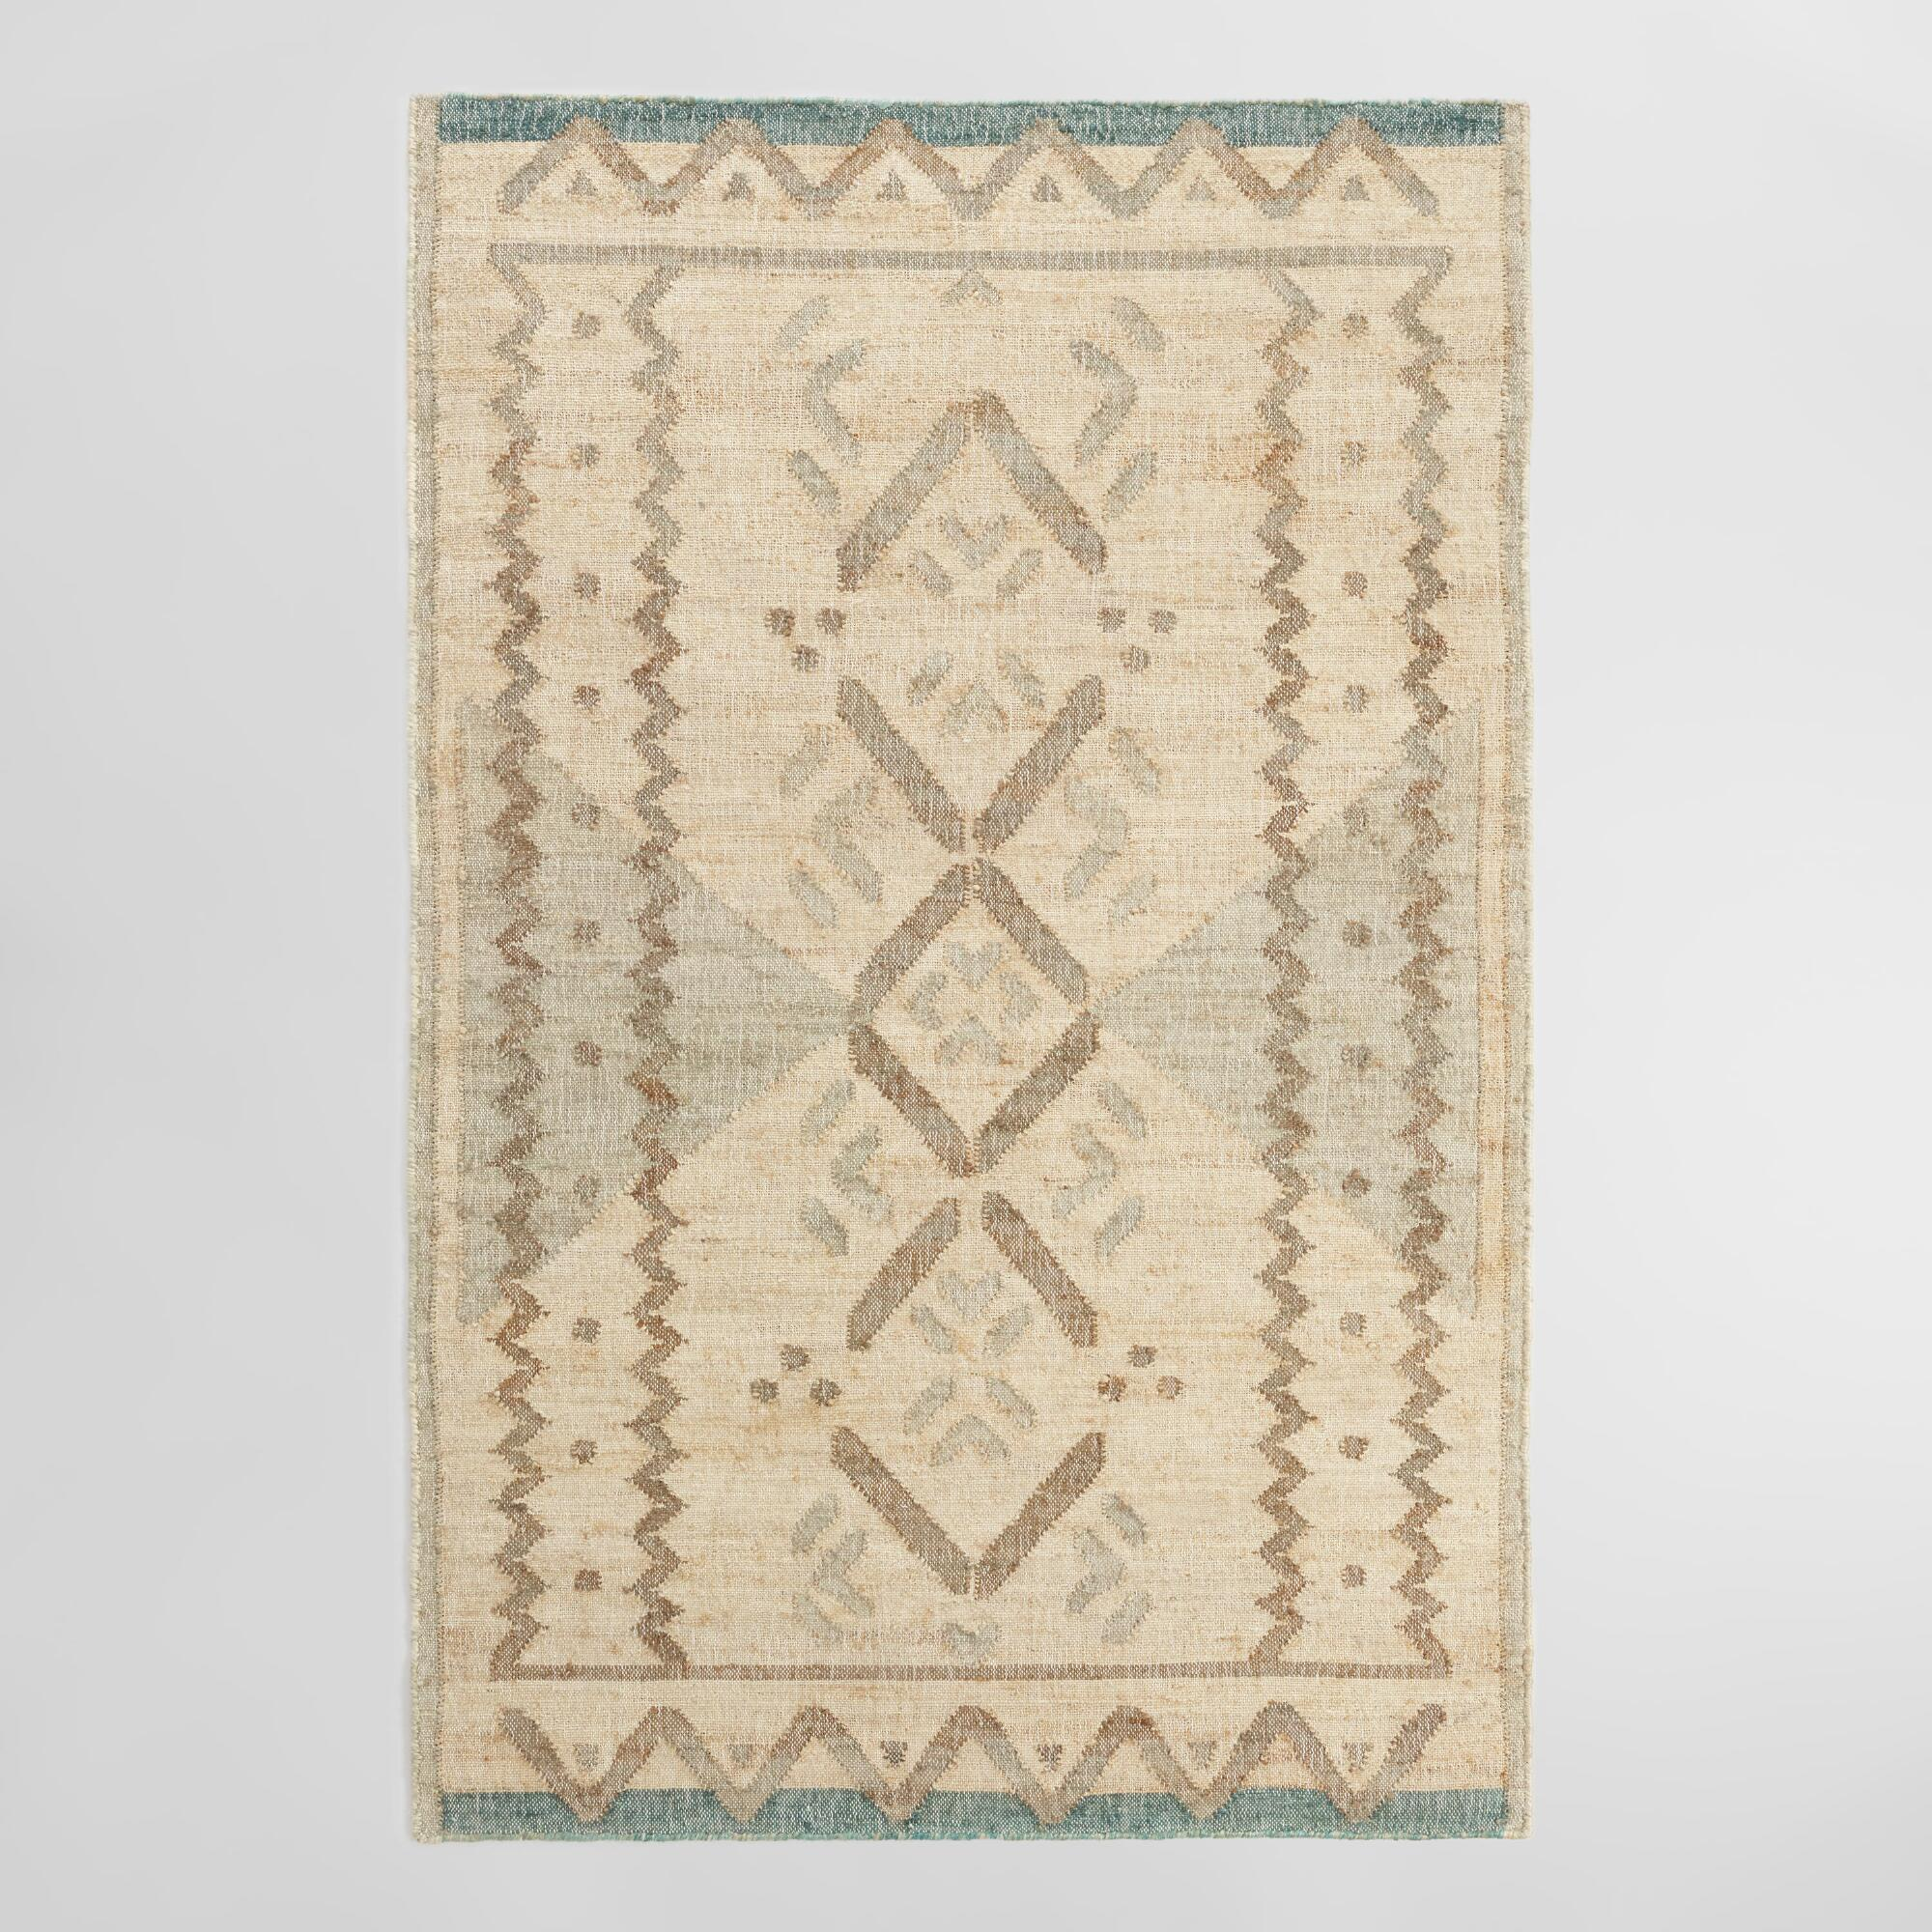 Natural and Jade Green Diamond Flatweave Jute Blend Area Rug - 8Ftx10Ft by World Market 8Ftx10Ft